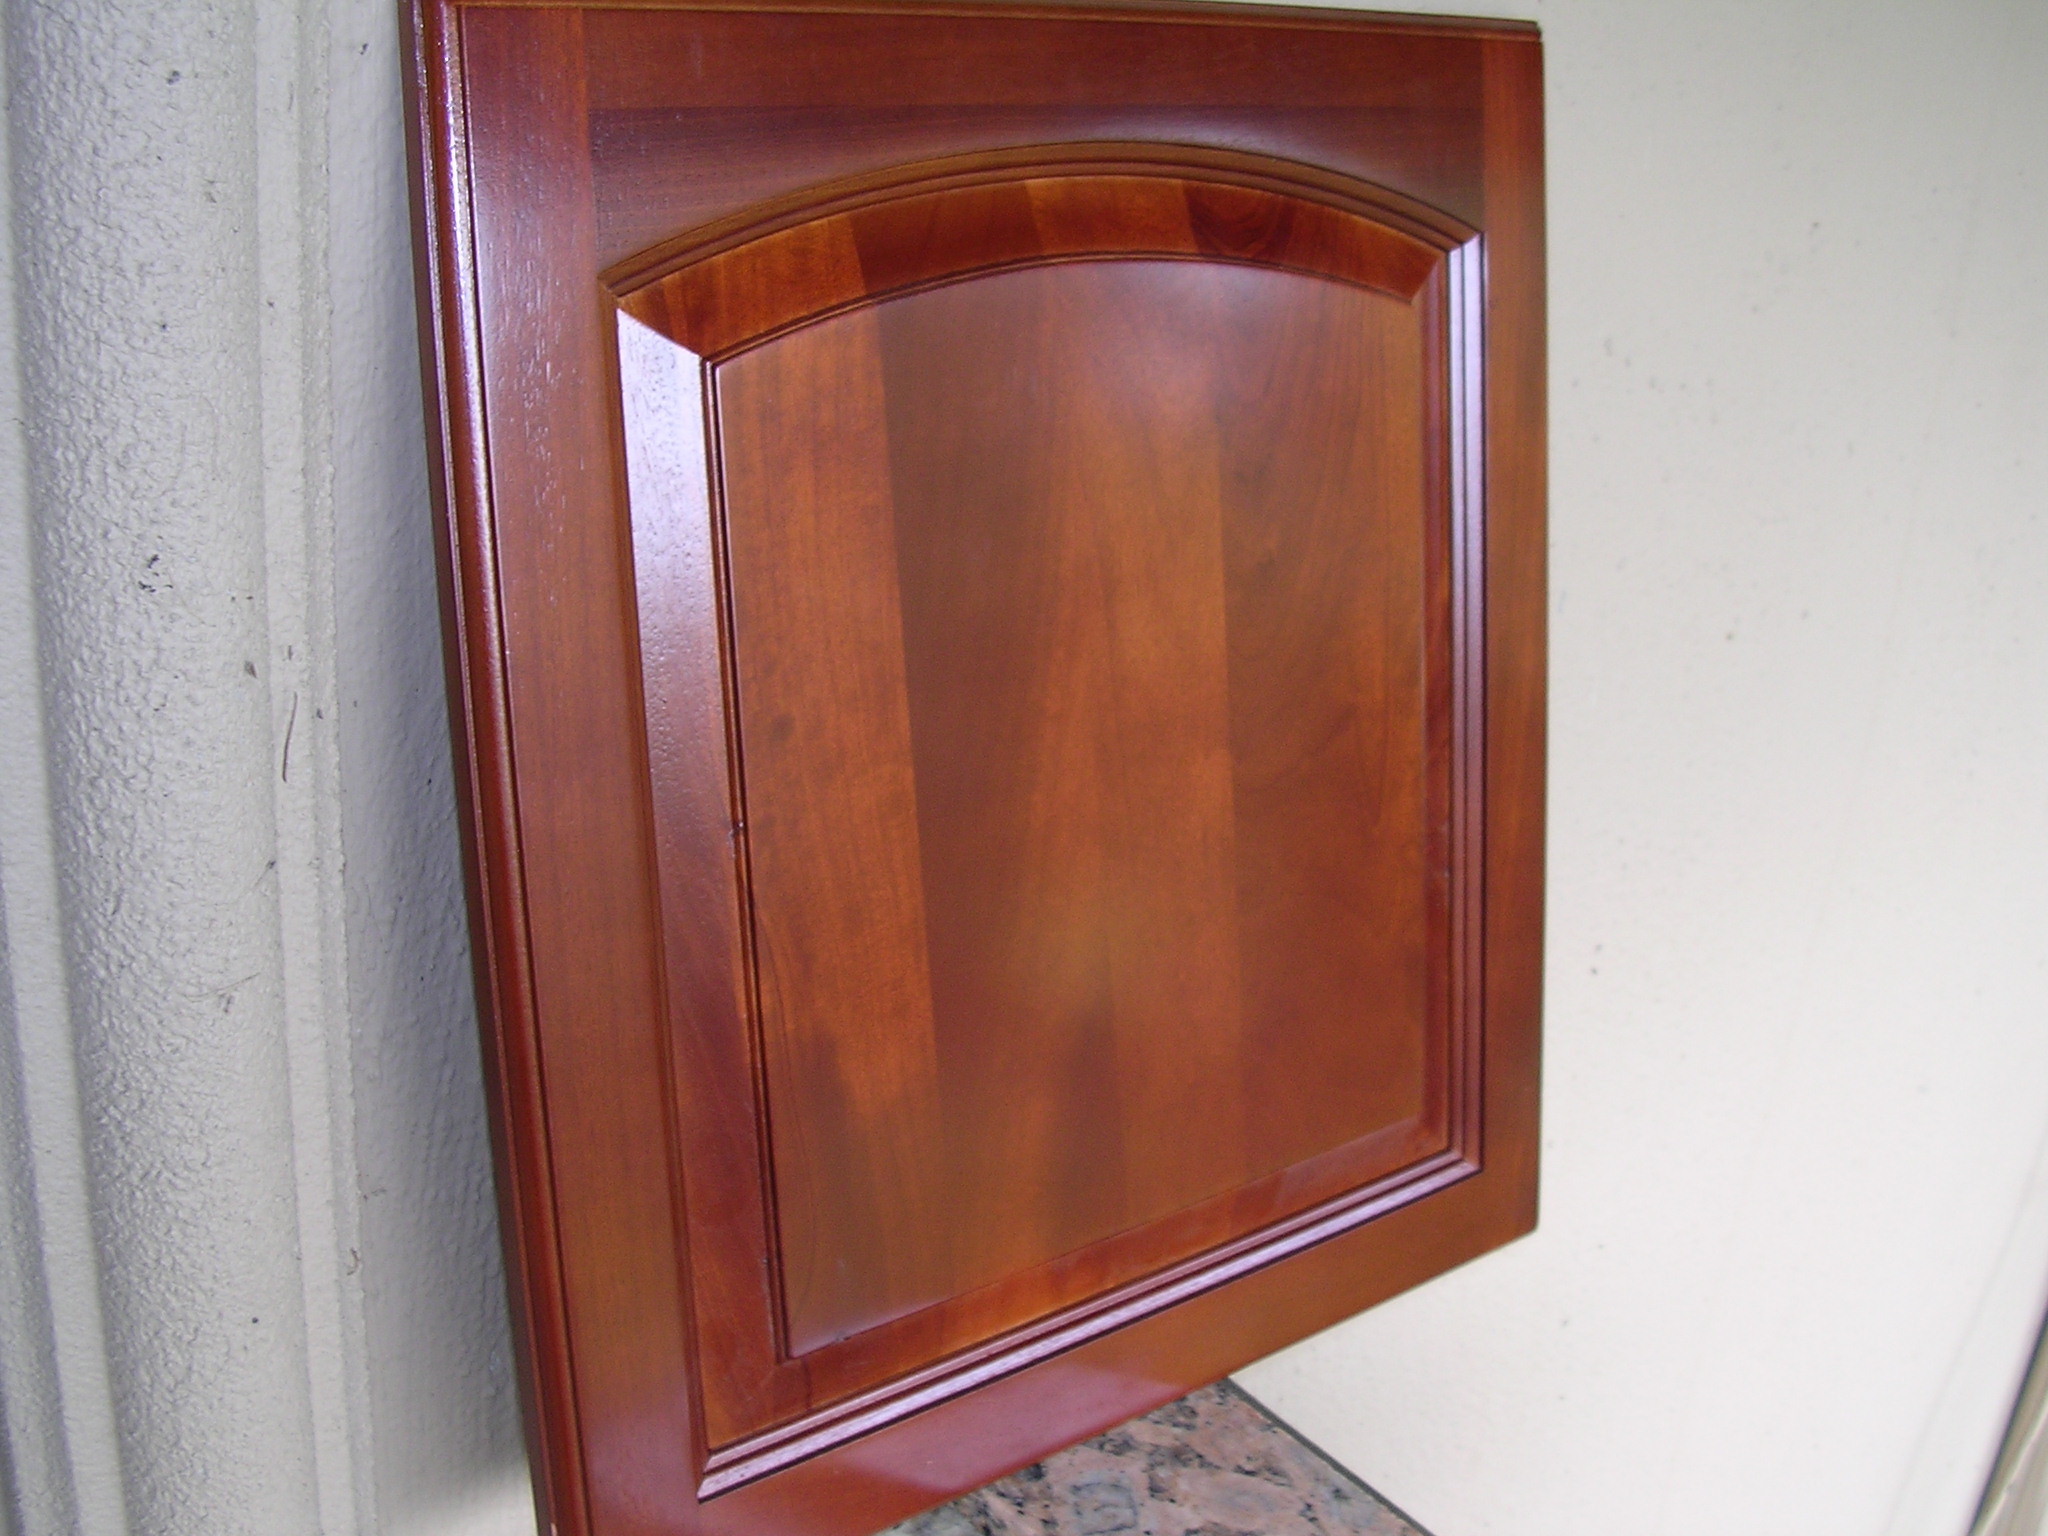 Rta cabinet broker 5f traditional cherry arched kitchen for Arched kitchen cabinets